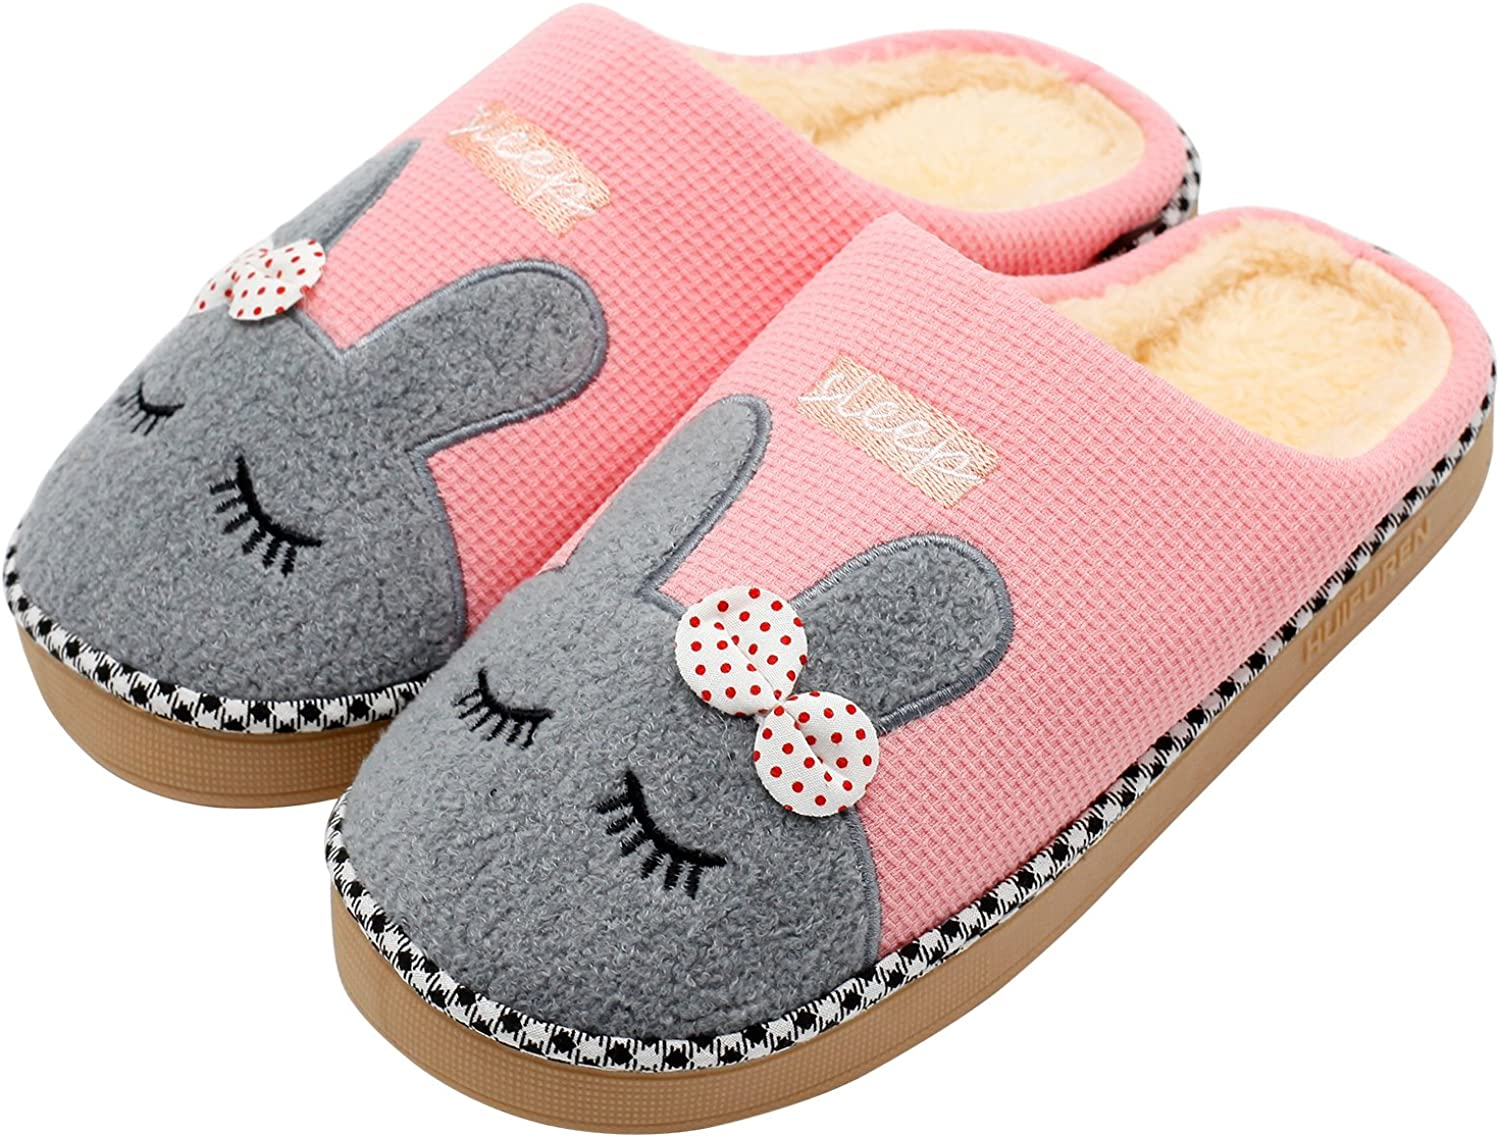 CidBestOfficial House Slippers, Indoor Slippers, Women Slipper, Cotton Slippers, Winter Warm Slipper